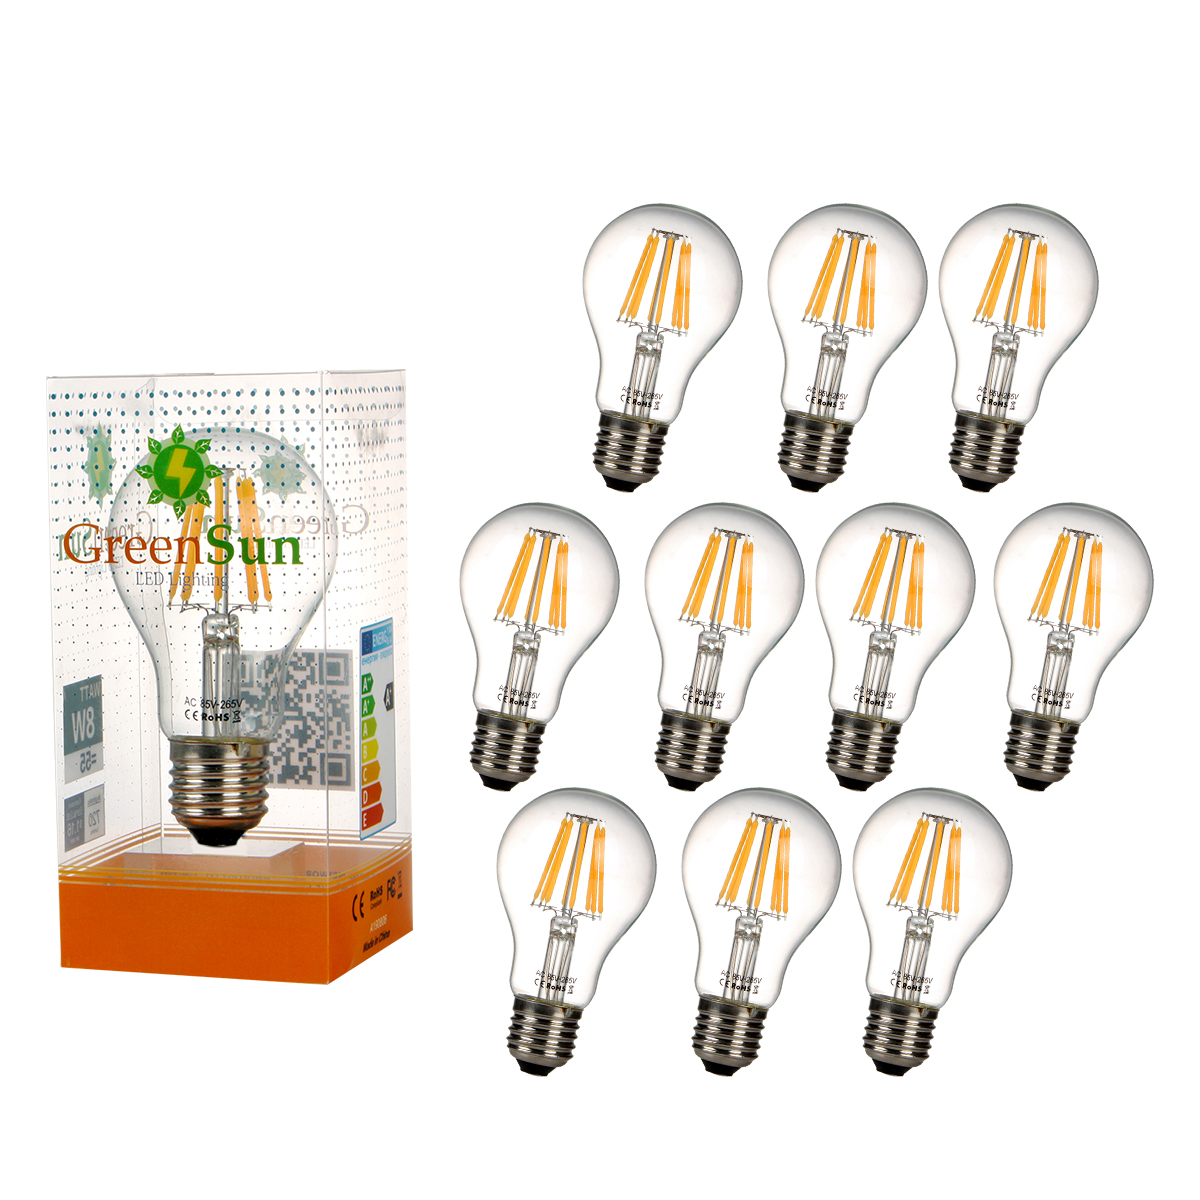 10Pcs E27 8W Edison Filament Warm White LED Energy Saving Bulb Light Lamp high brightness 1pcs led edison bulb indoor led light clear glass ac220 230v e27 2w 4w 6w 8w led filament bulb white warm white